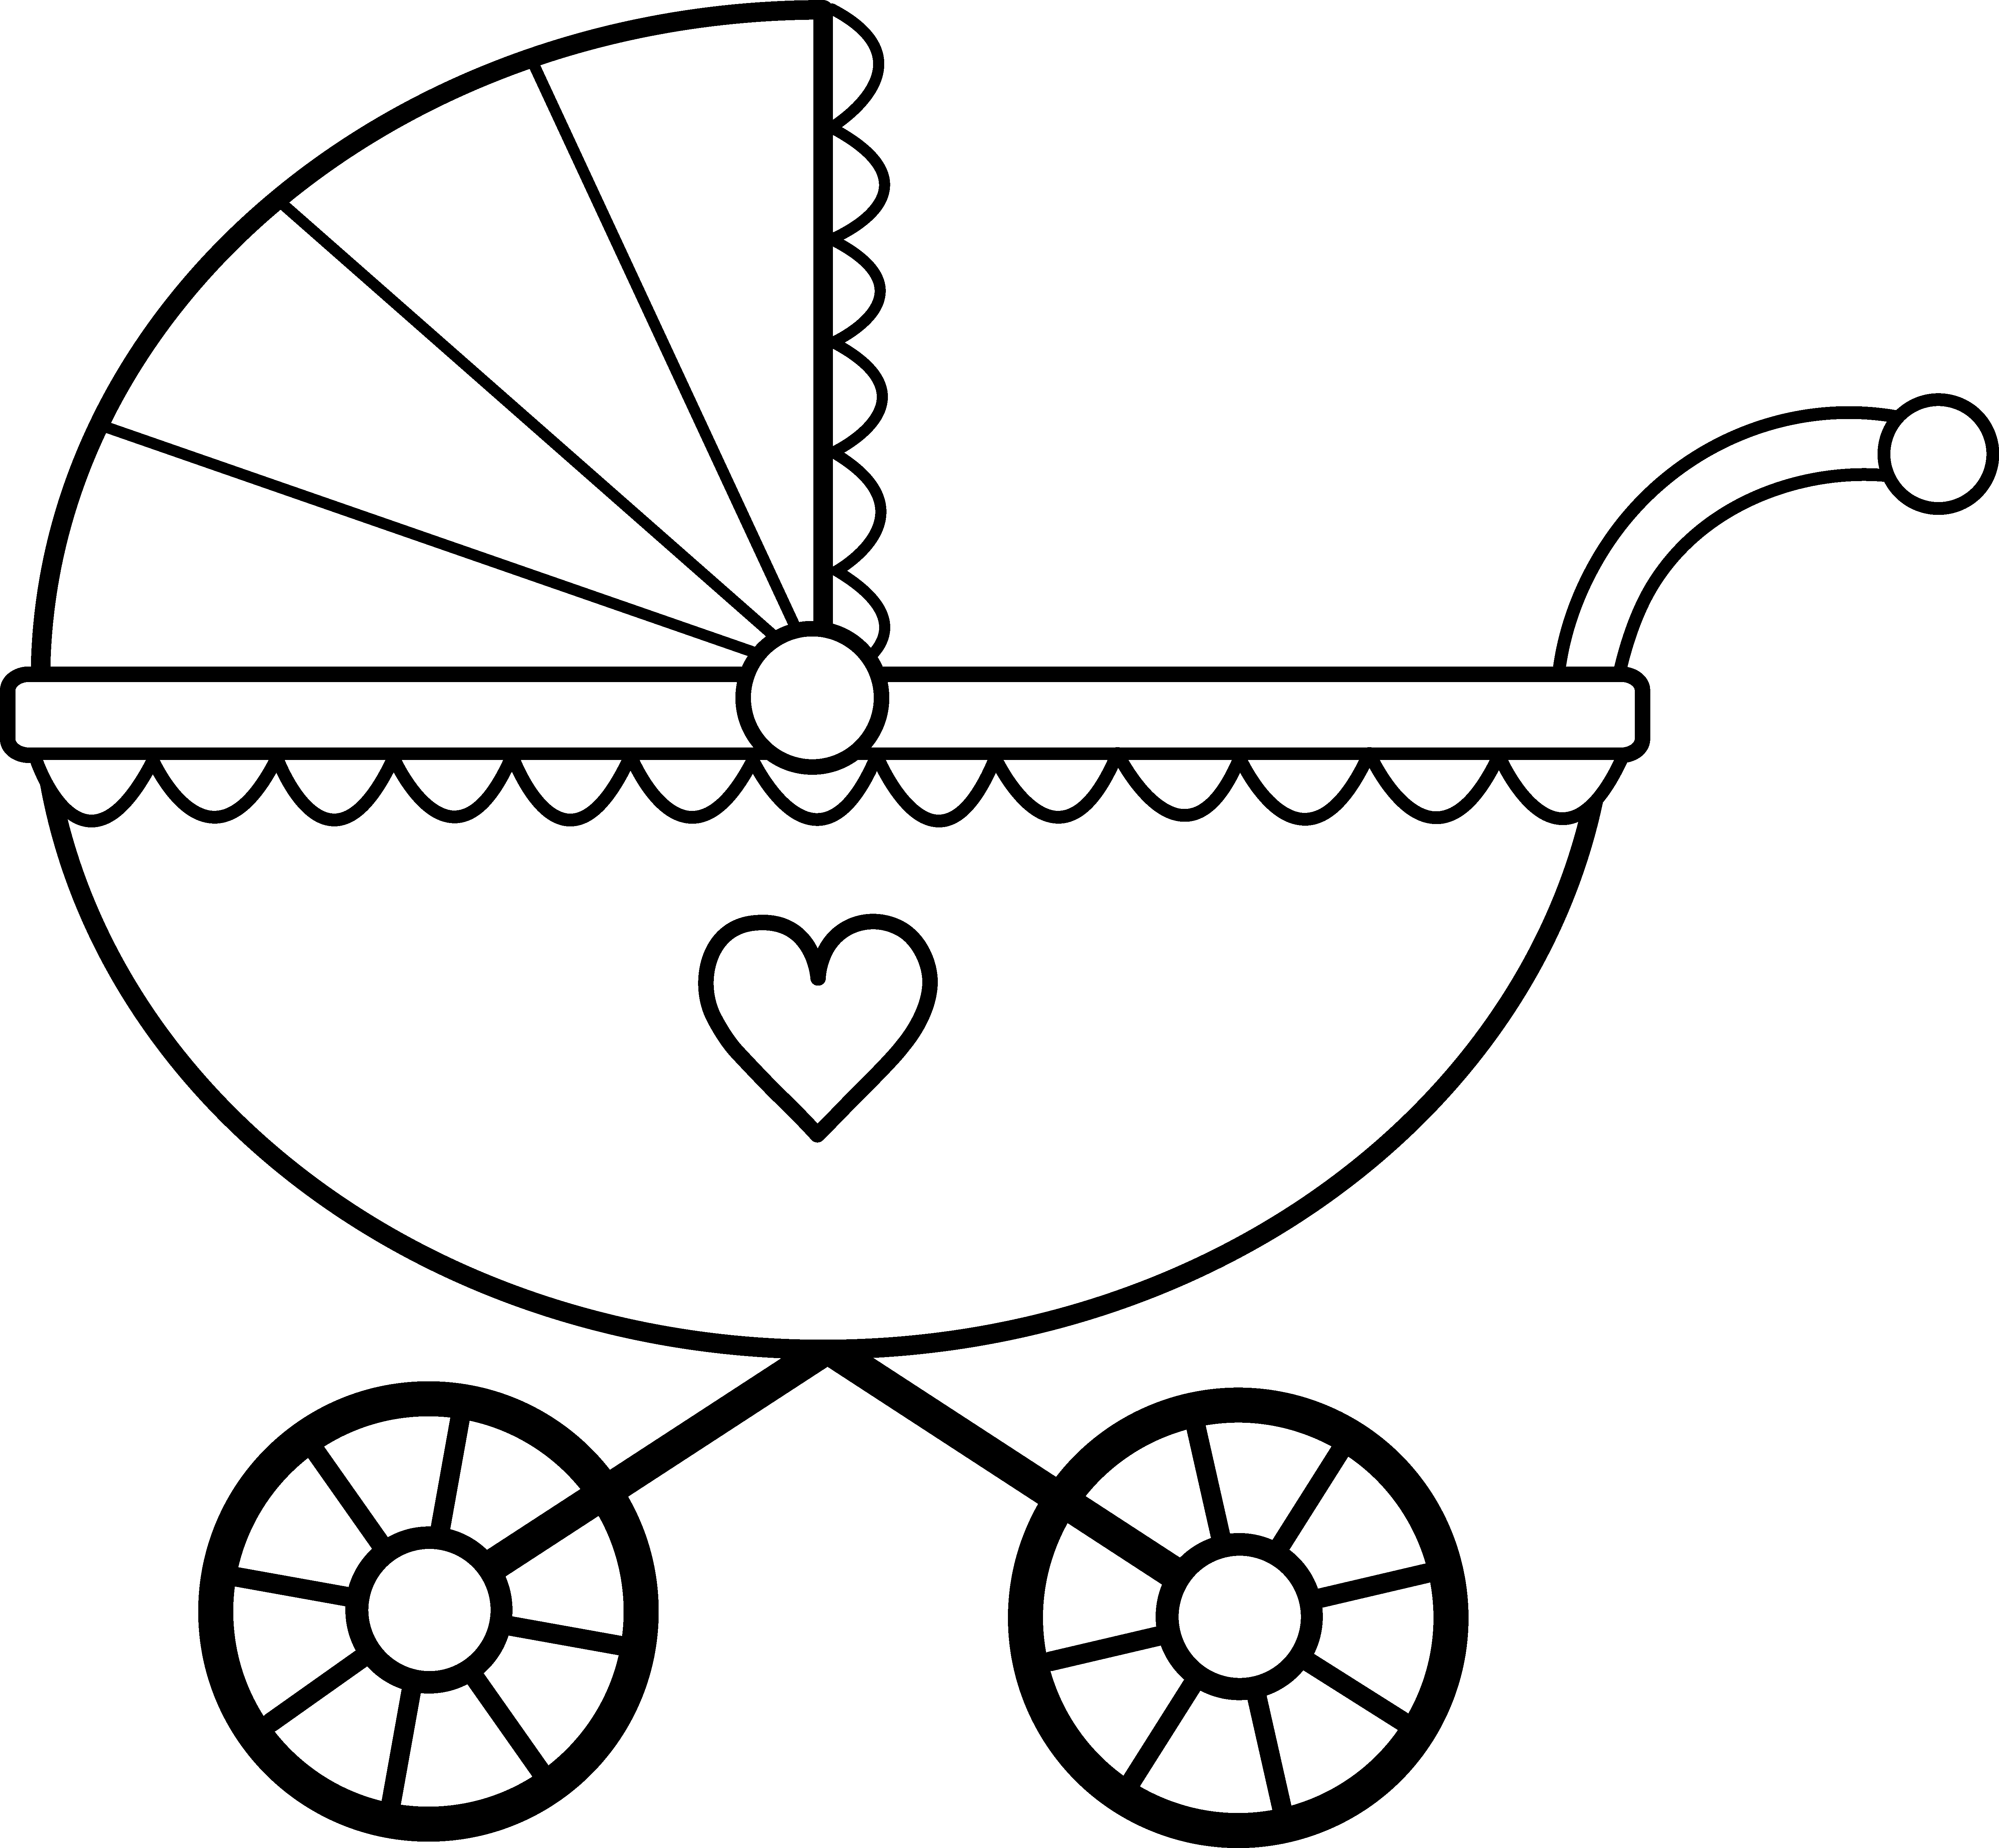 freeuse library Baby Line Drawing at GetDrawings